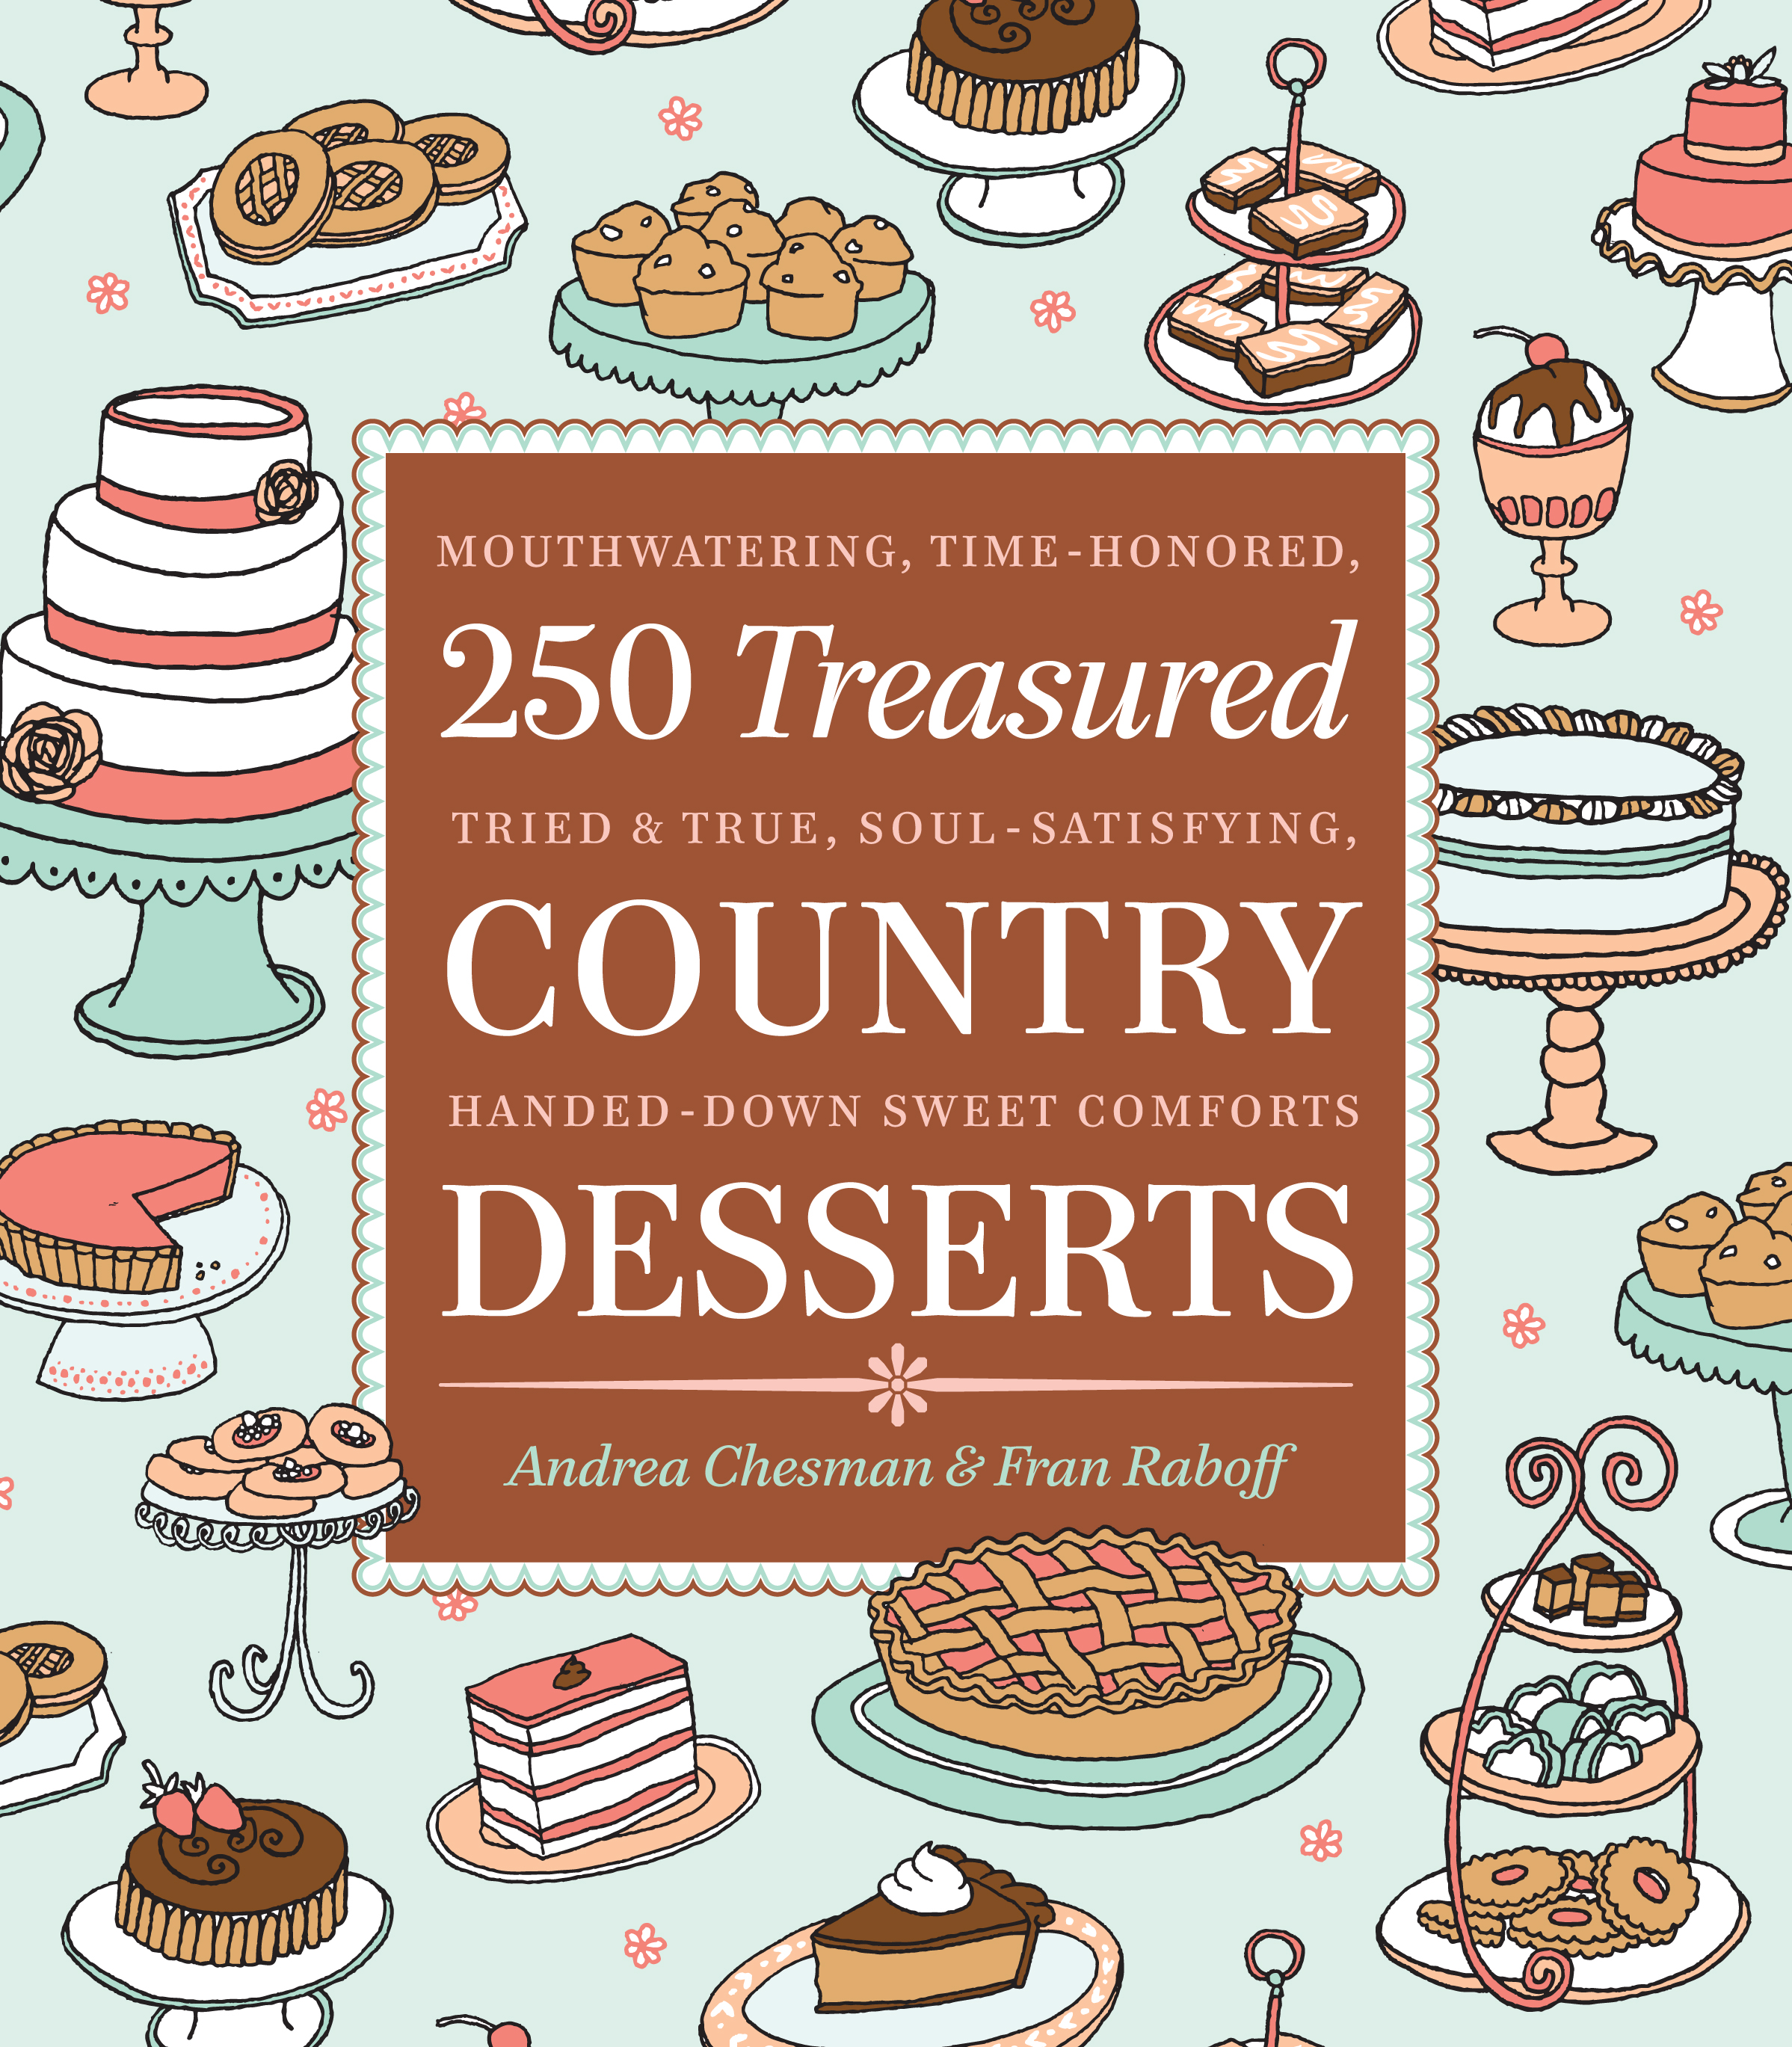 250 Treasured Country Desserts Mouthwatering, Time-honored, Tried & True, Soul-satisfying, Handed-down Sweet Comforts - Andrea Chesman